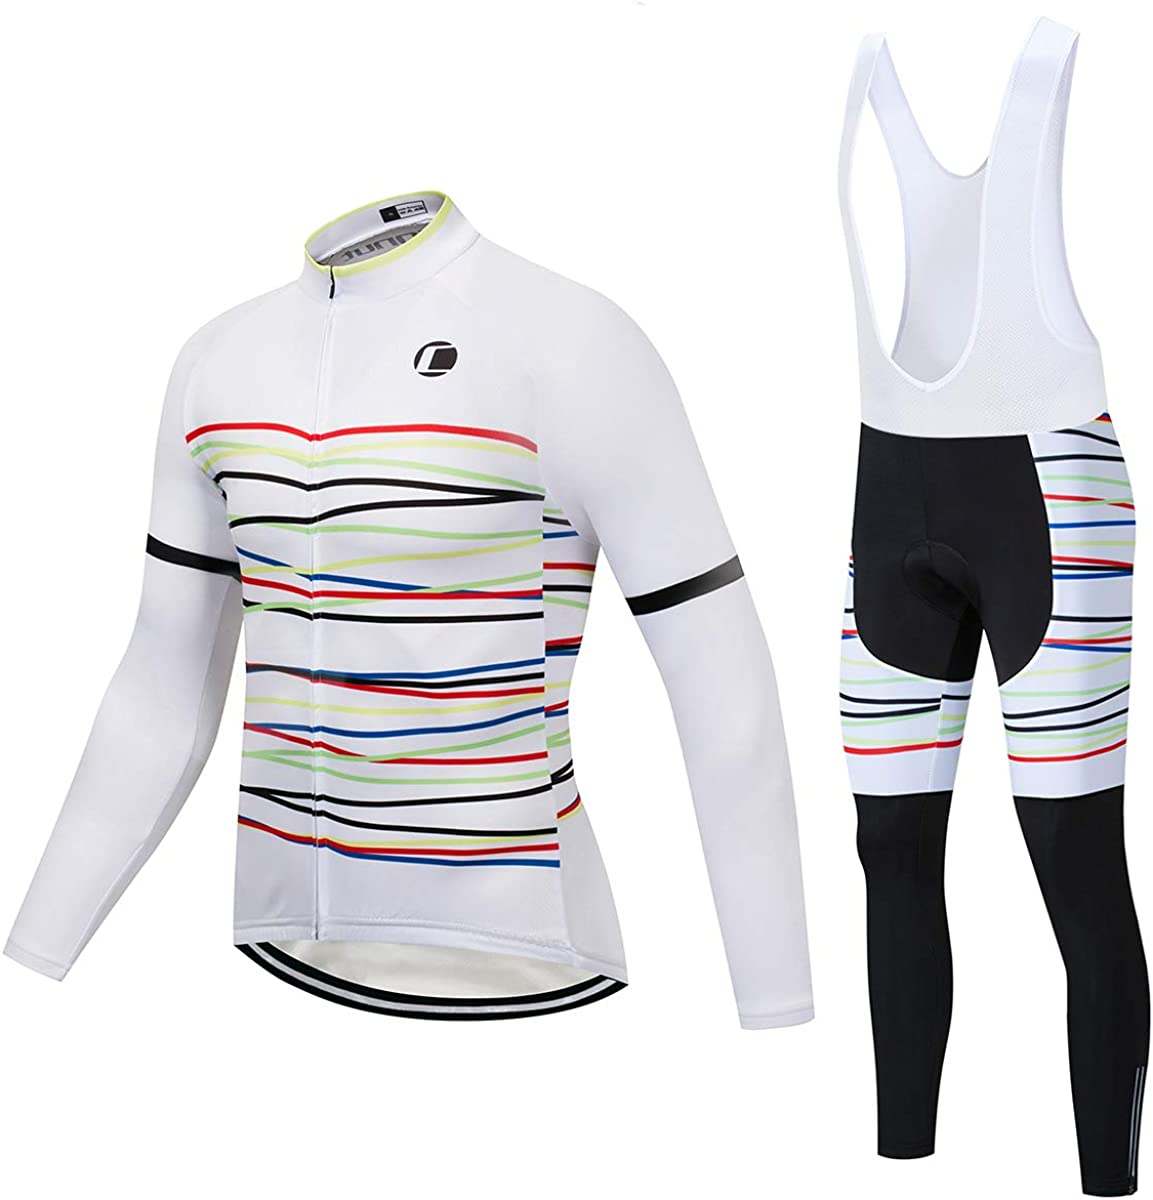 Winter OFFicial store Miami Mall Cycling Jersey Sets Thermal Bib Pant + Fleece Bike